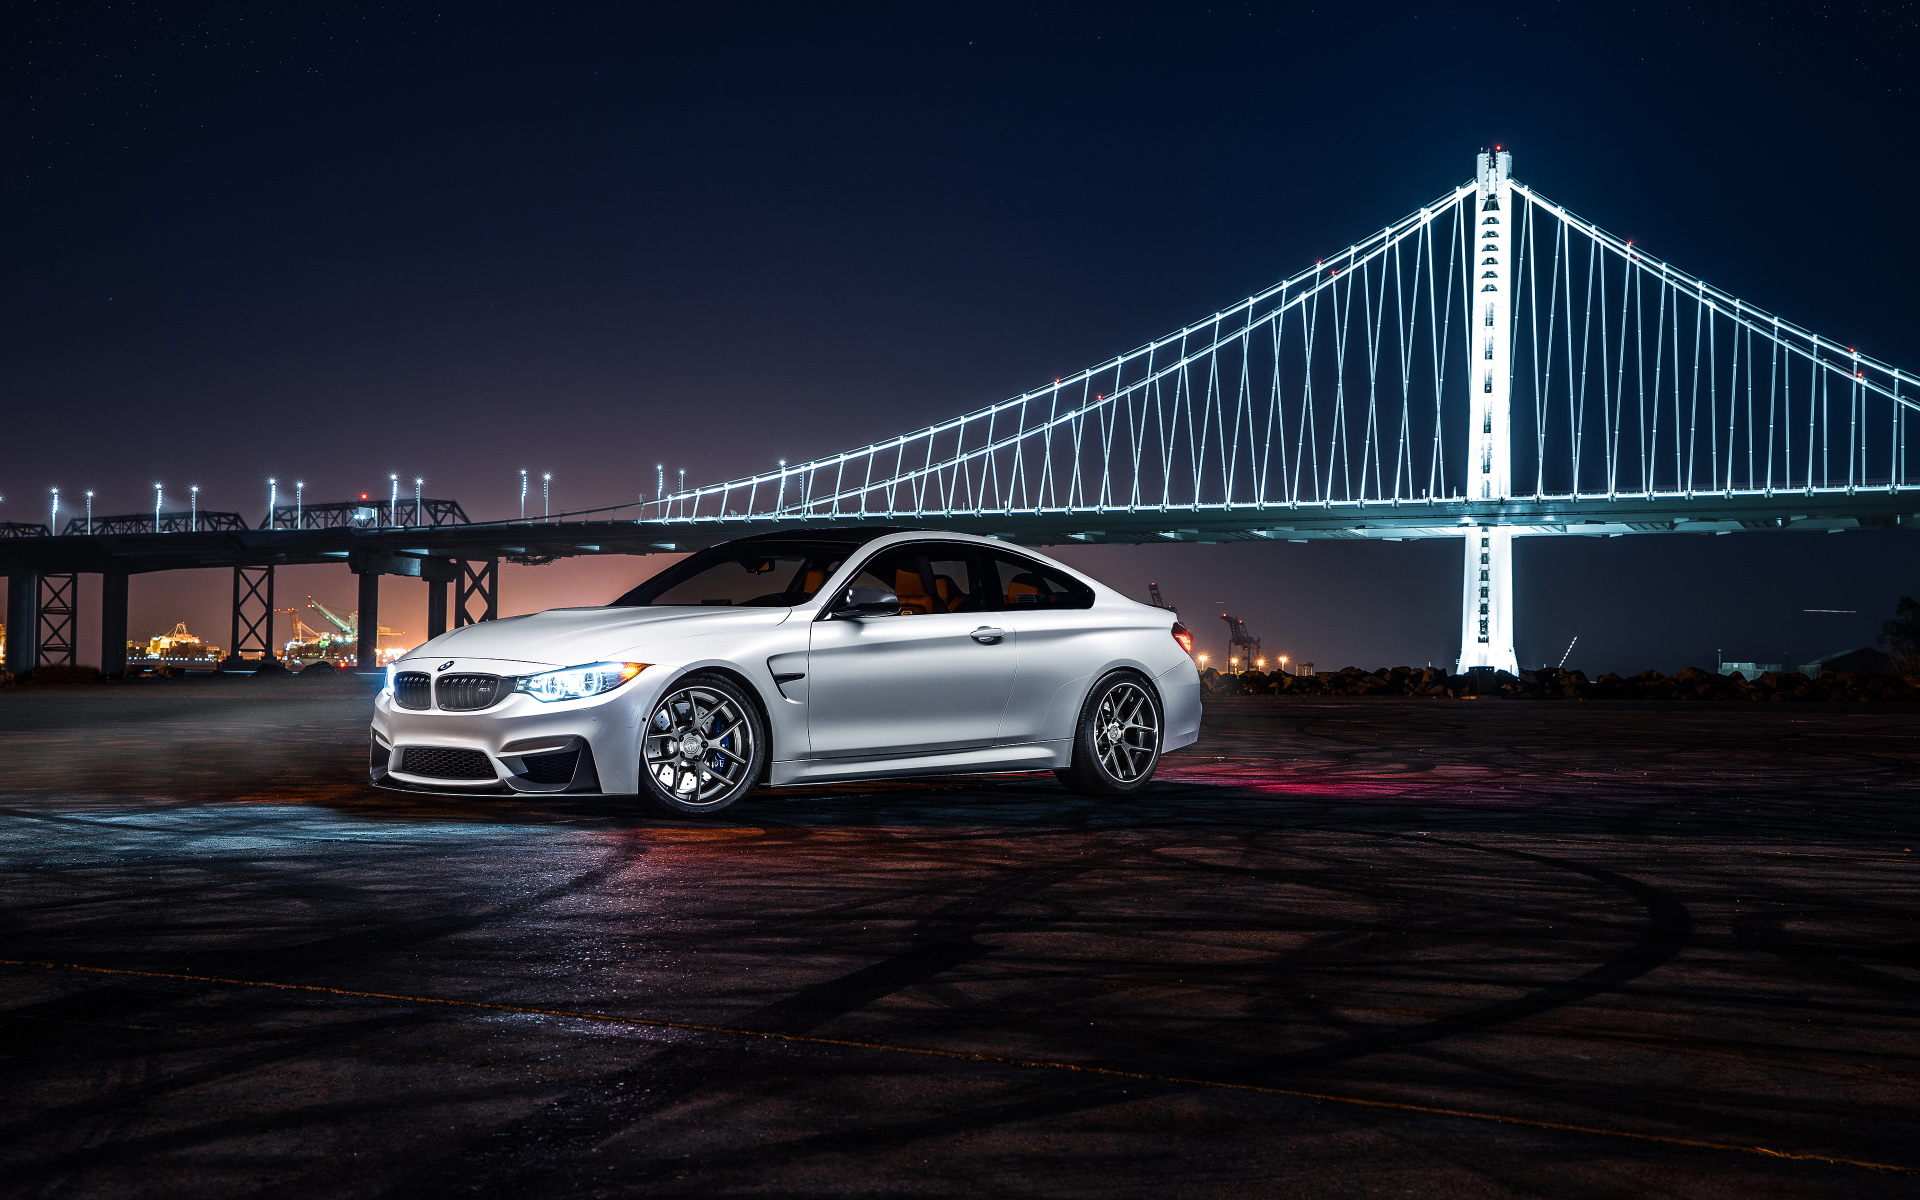 1920x1200 - BMW M4 Wallpapers 27